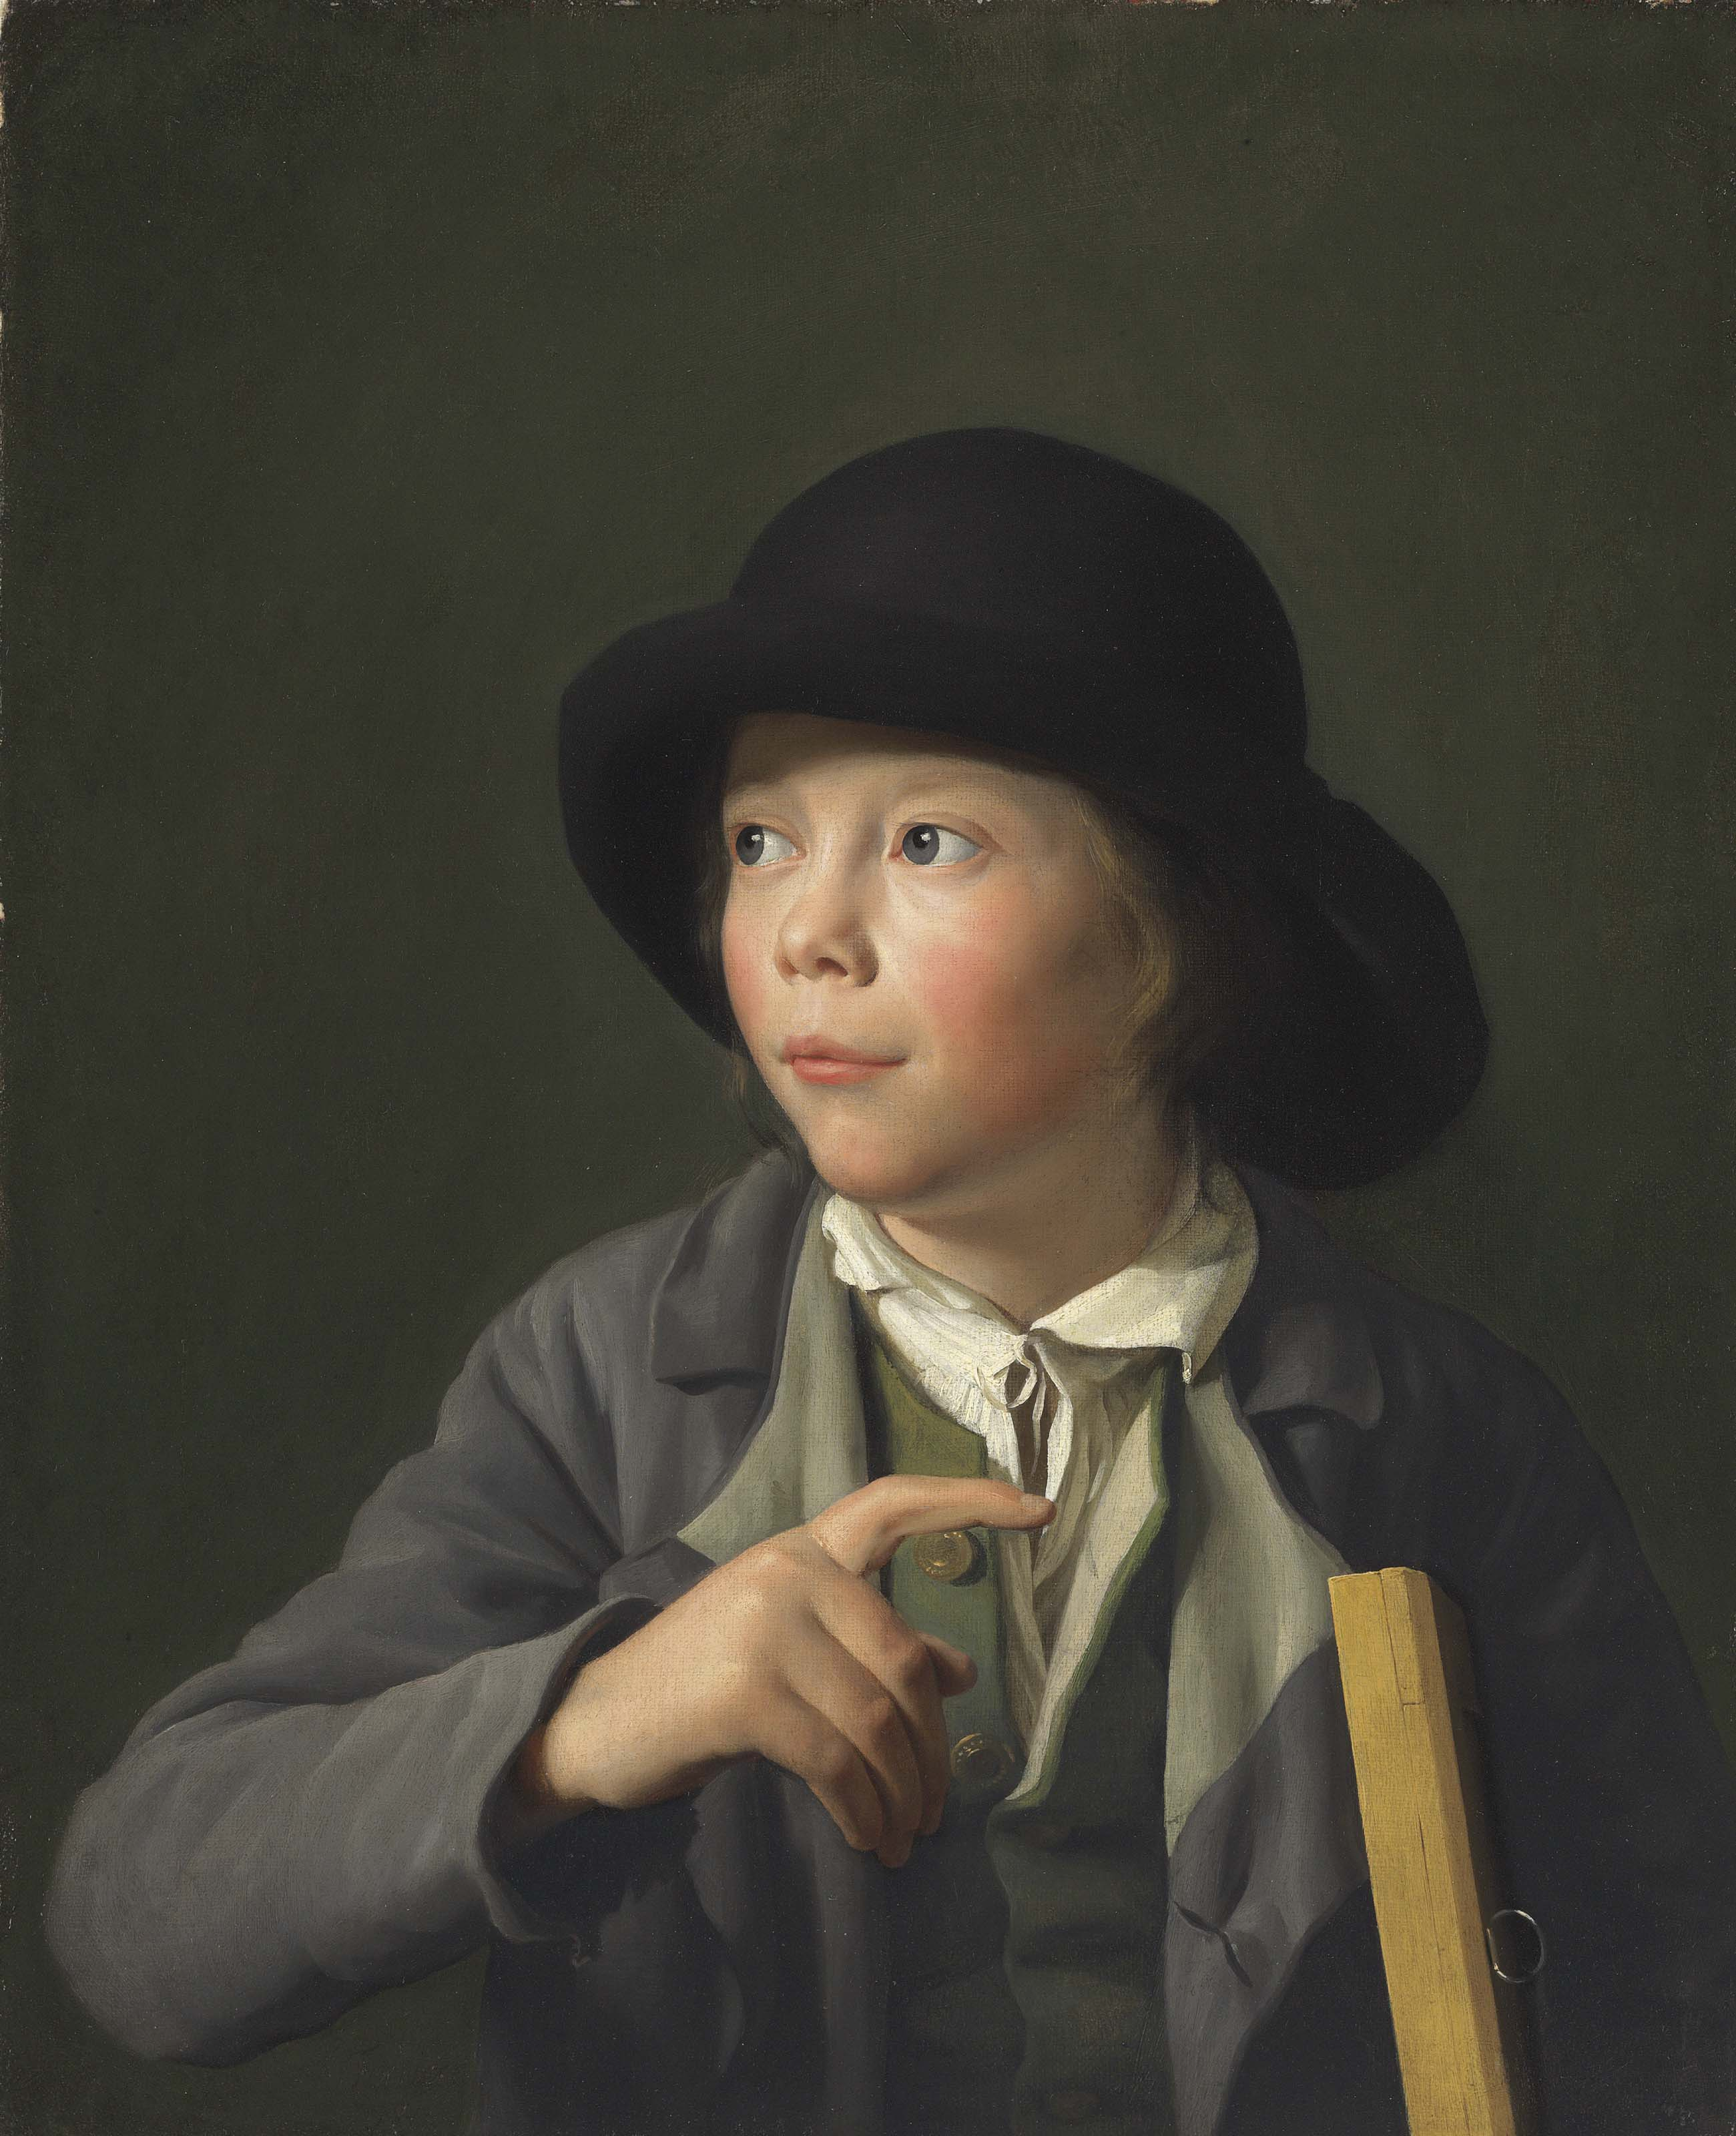 A youth wearing a hat and holding a picture